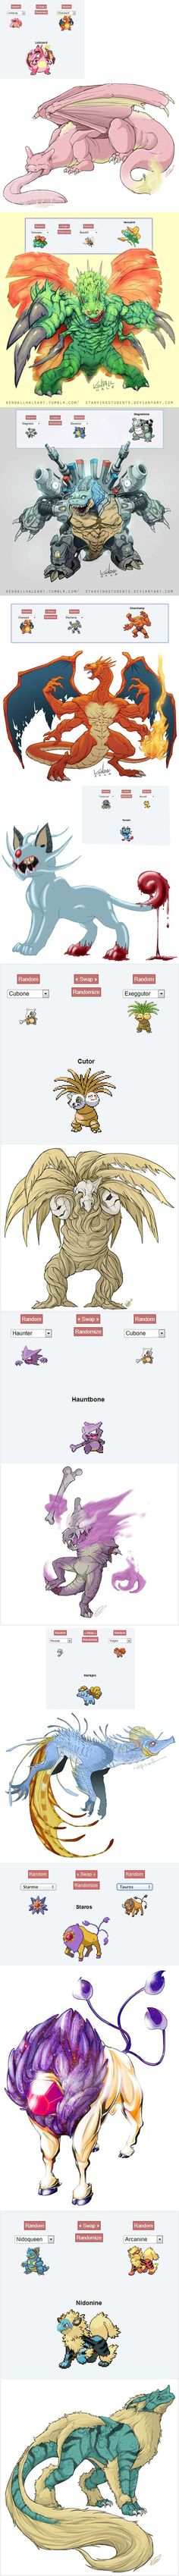 Pokemon Fusion Art ~ freaky yet cool http://www.wdb.es/funny/117/#